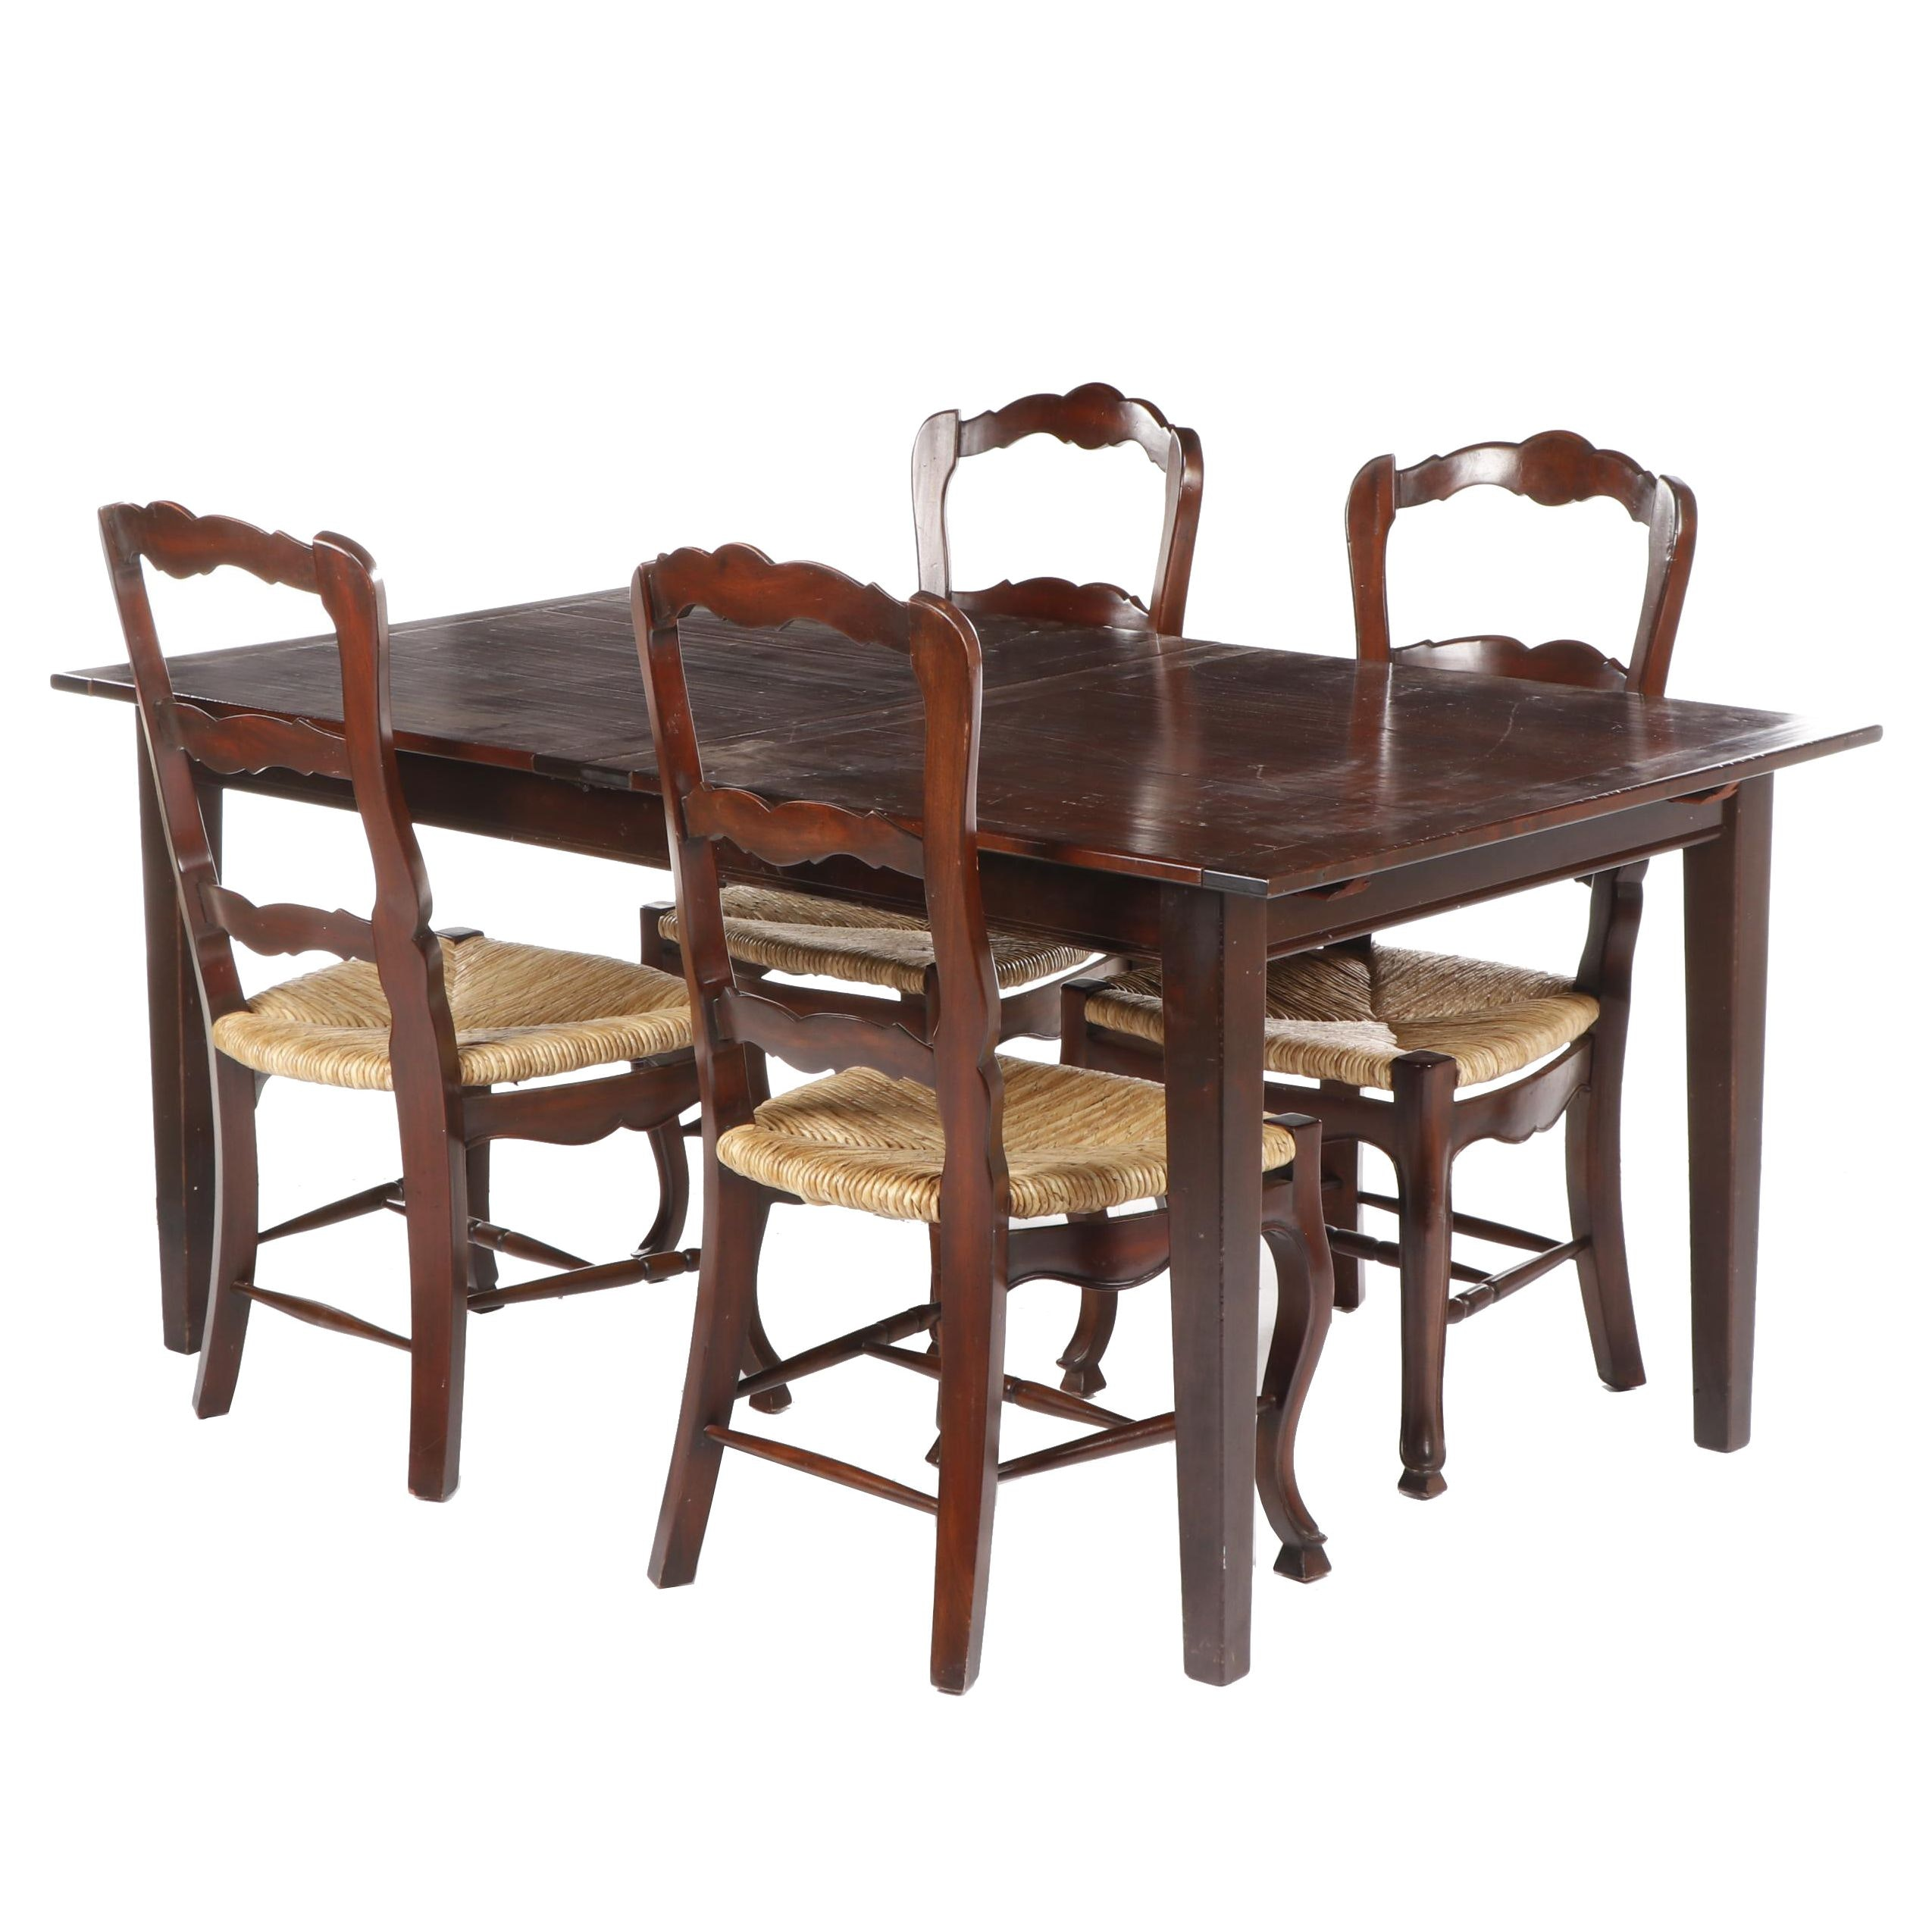 Expanding Wooden Dining Table and Four Colonial Style Side Chairs